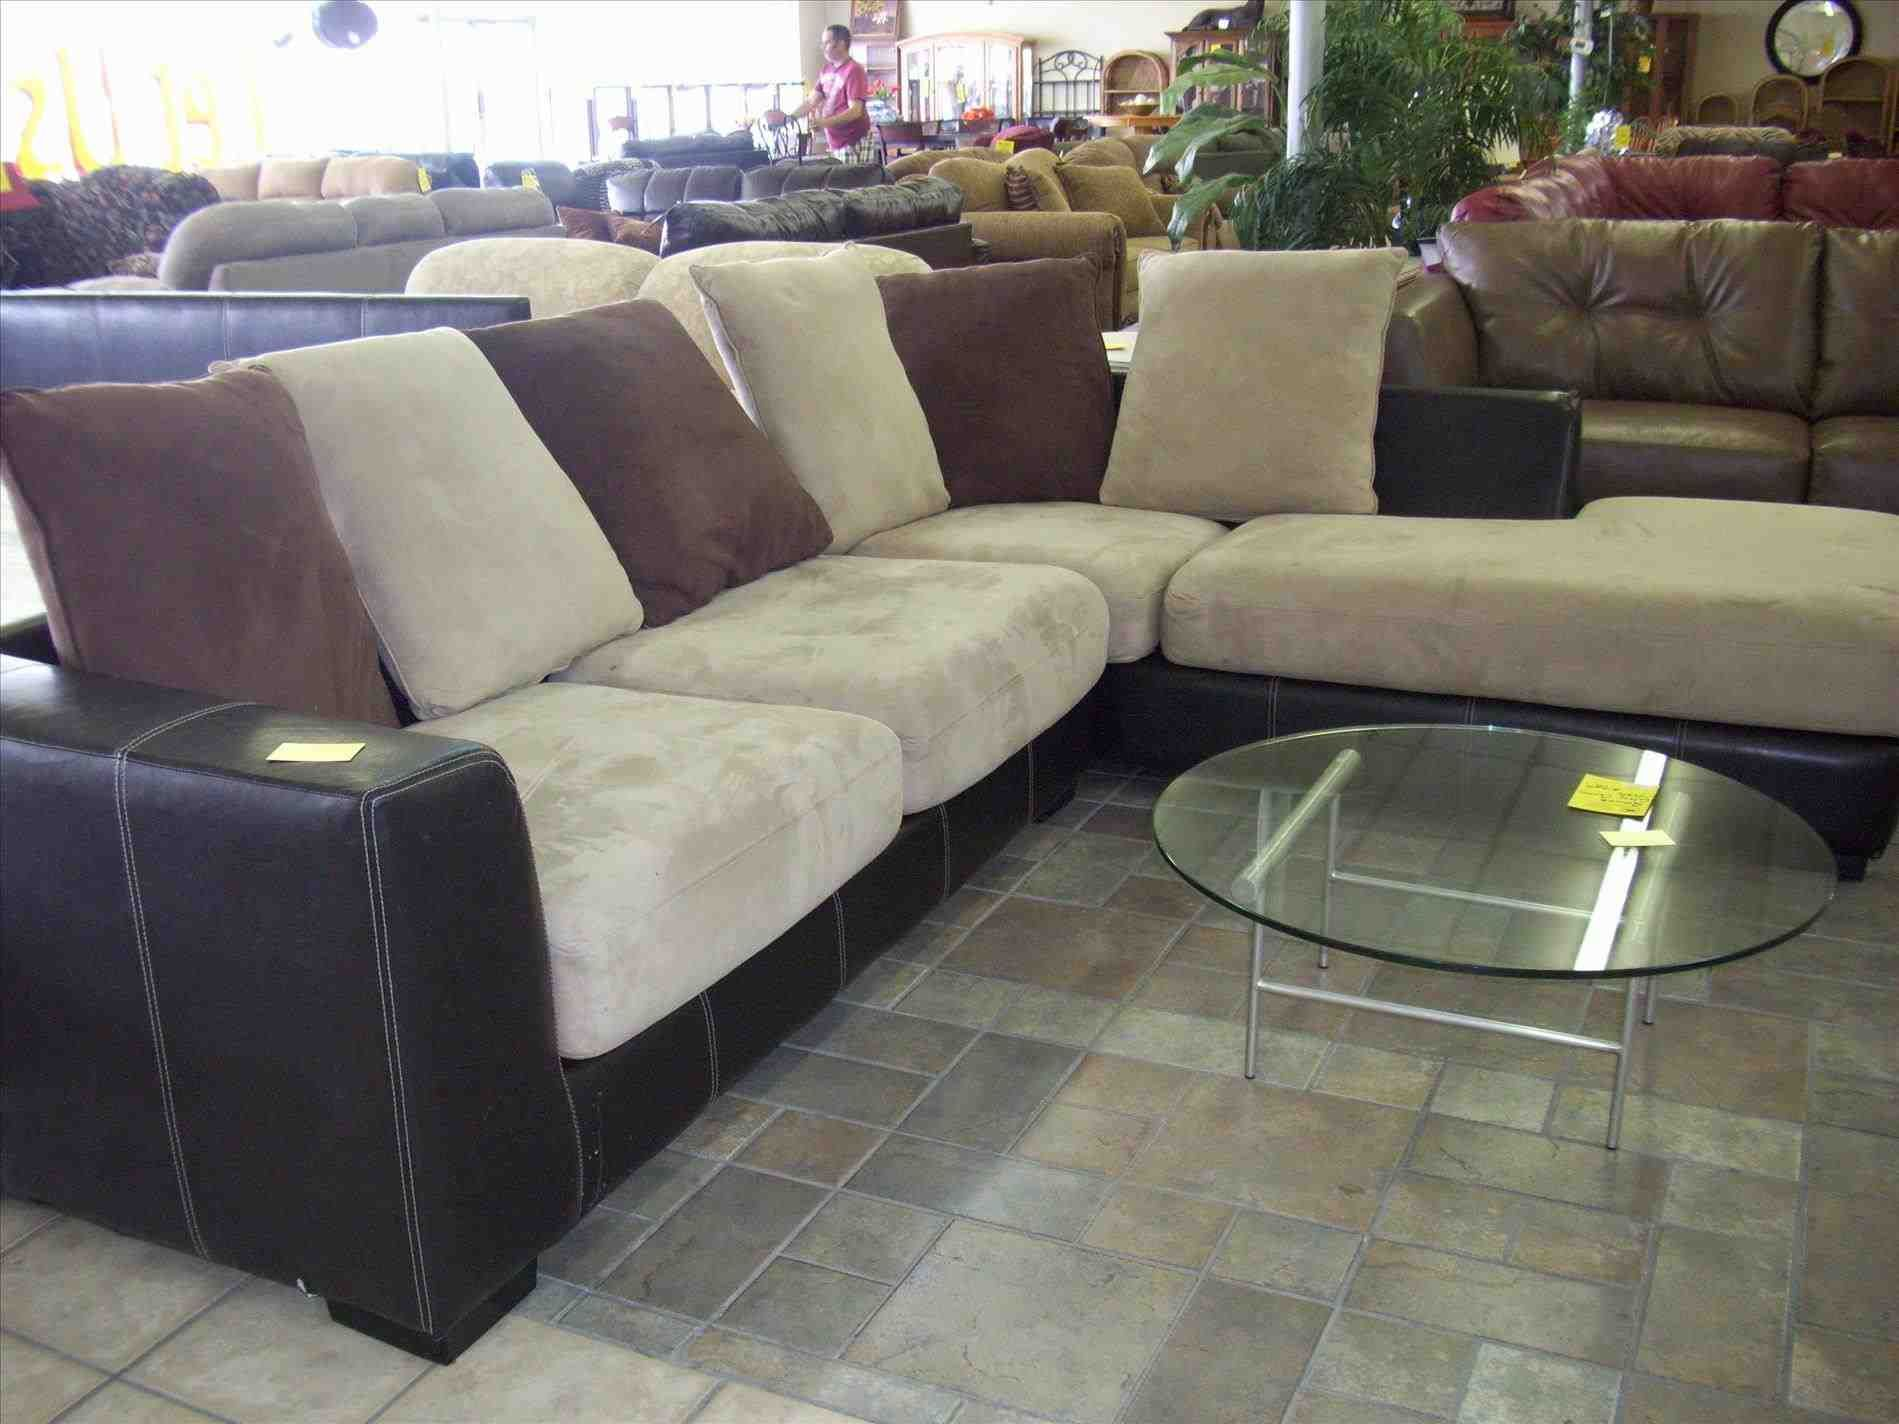 Cheap Sectionals Nj   Cream Sectional With Marble Coffee Table U2013 Furniture  And Home Decor U2013 Once And Again Consignment U2013 Madison Montville Nj.  Signature ...